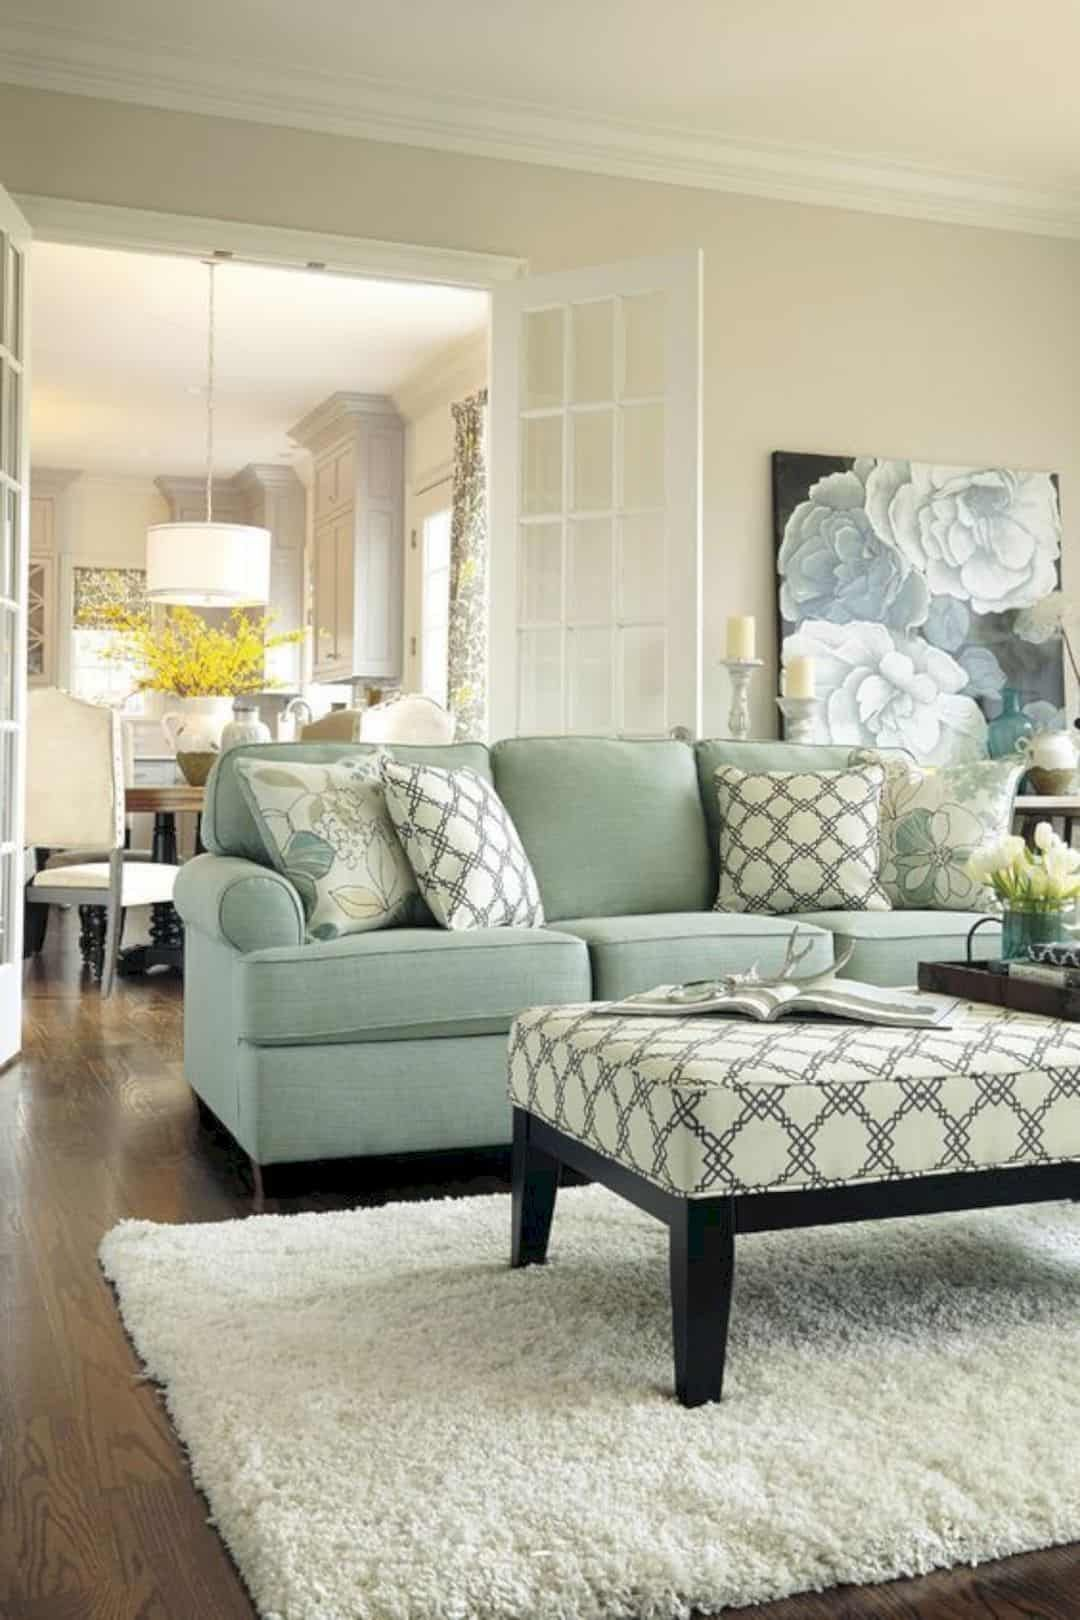 16 Top Small Living Room Furniture Ideas Blue Living Room Decor Light Blue Living Room Blue Sofas Living Room